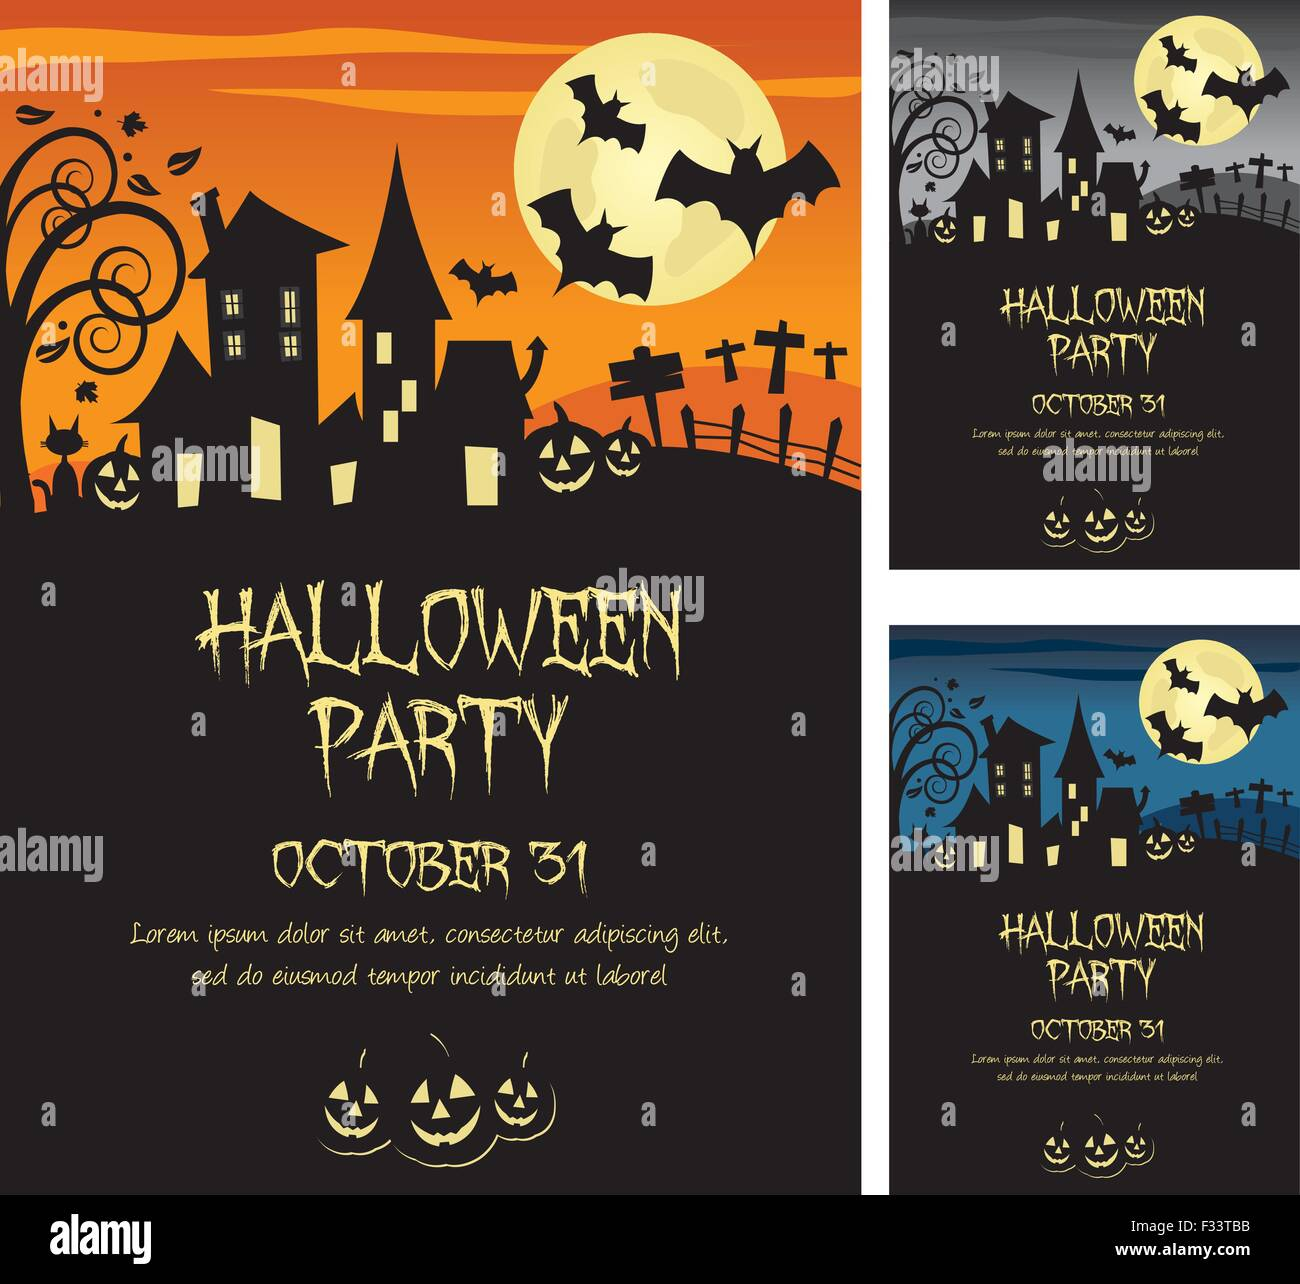 Halloween party invitation poster or card illustration design ...